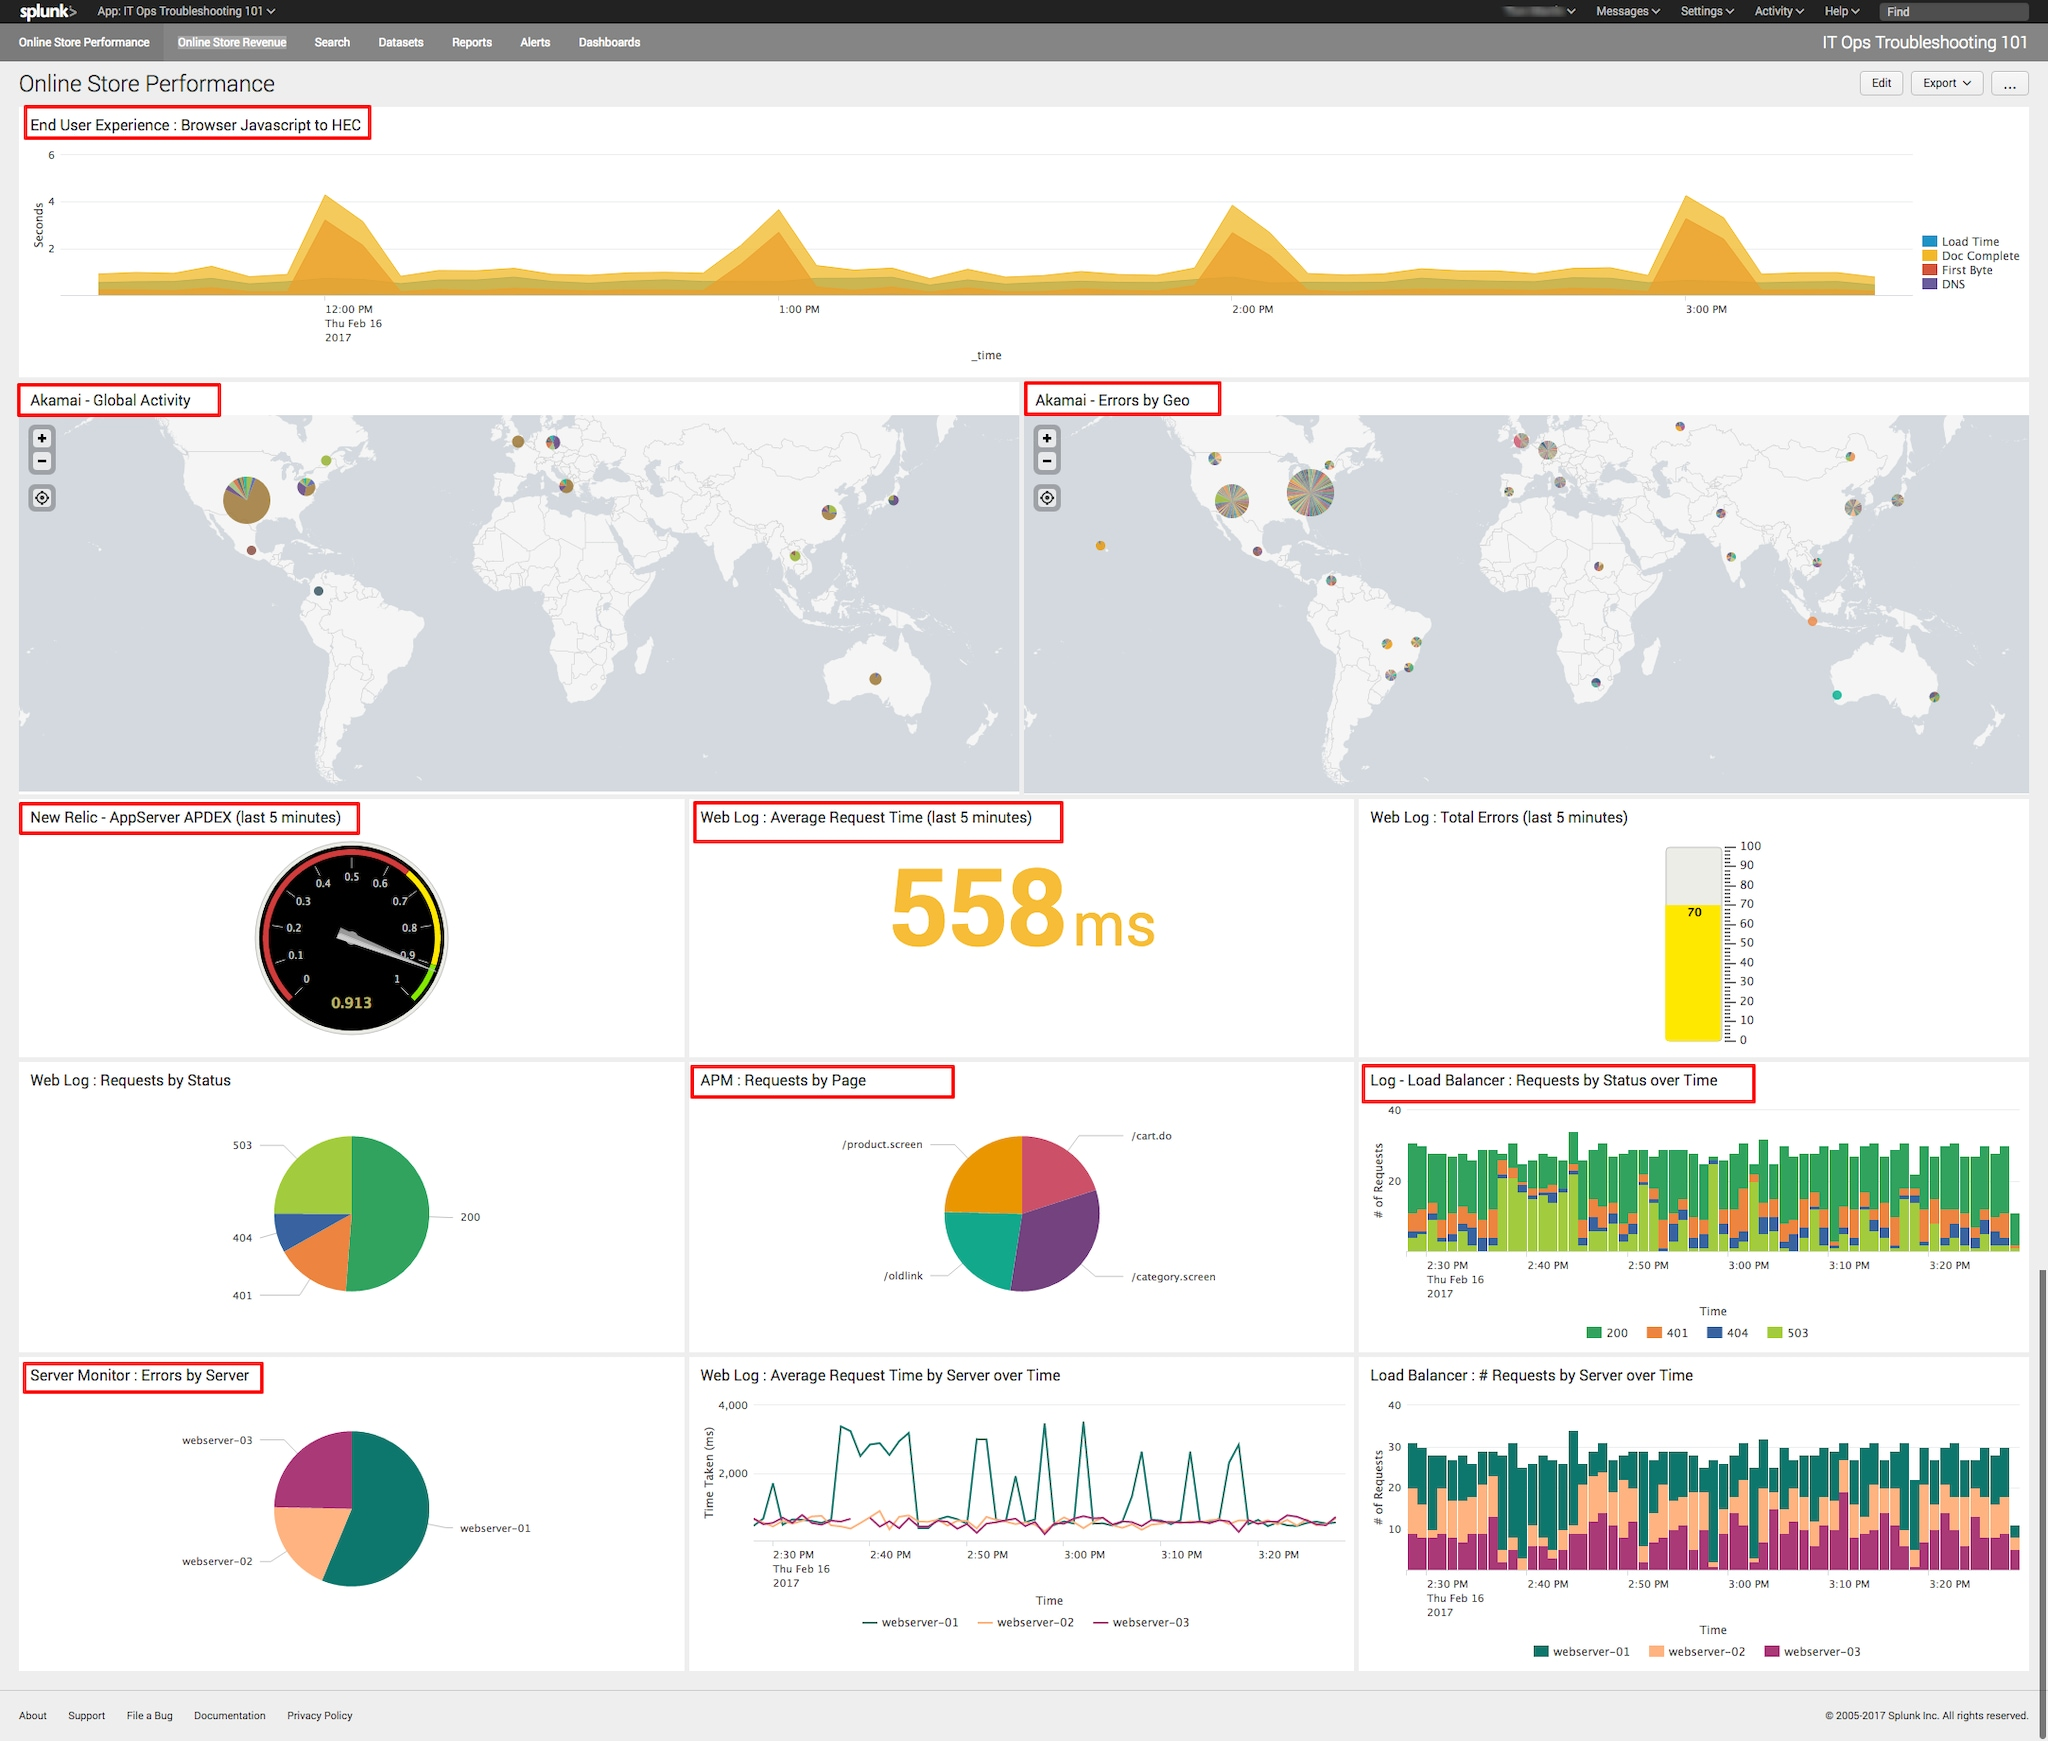 Splunk and New Relic: Better Together